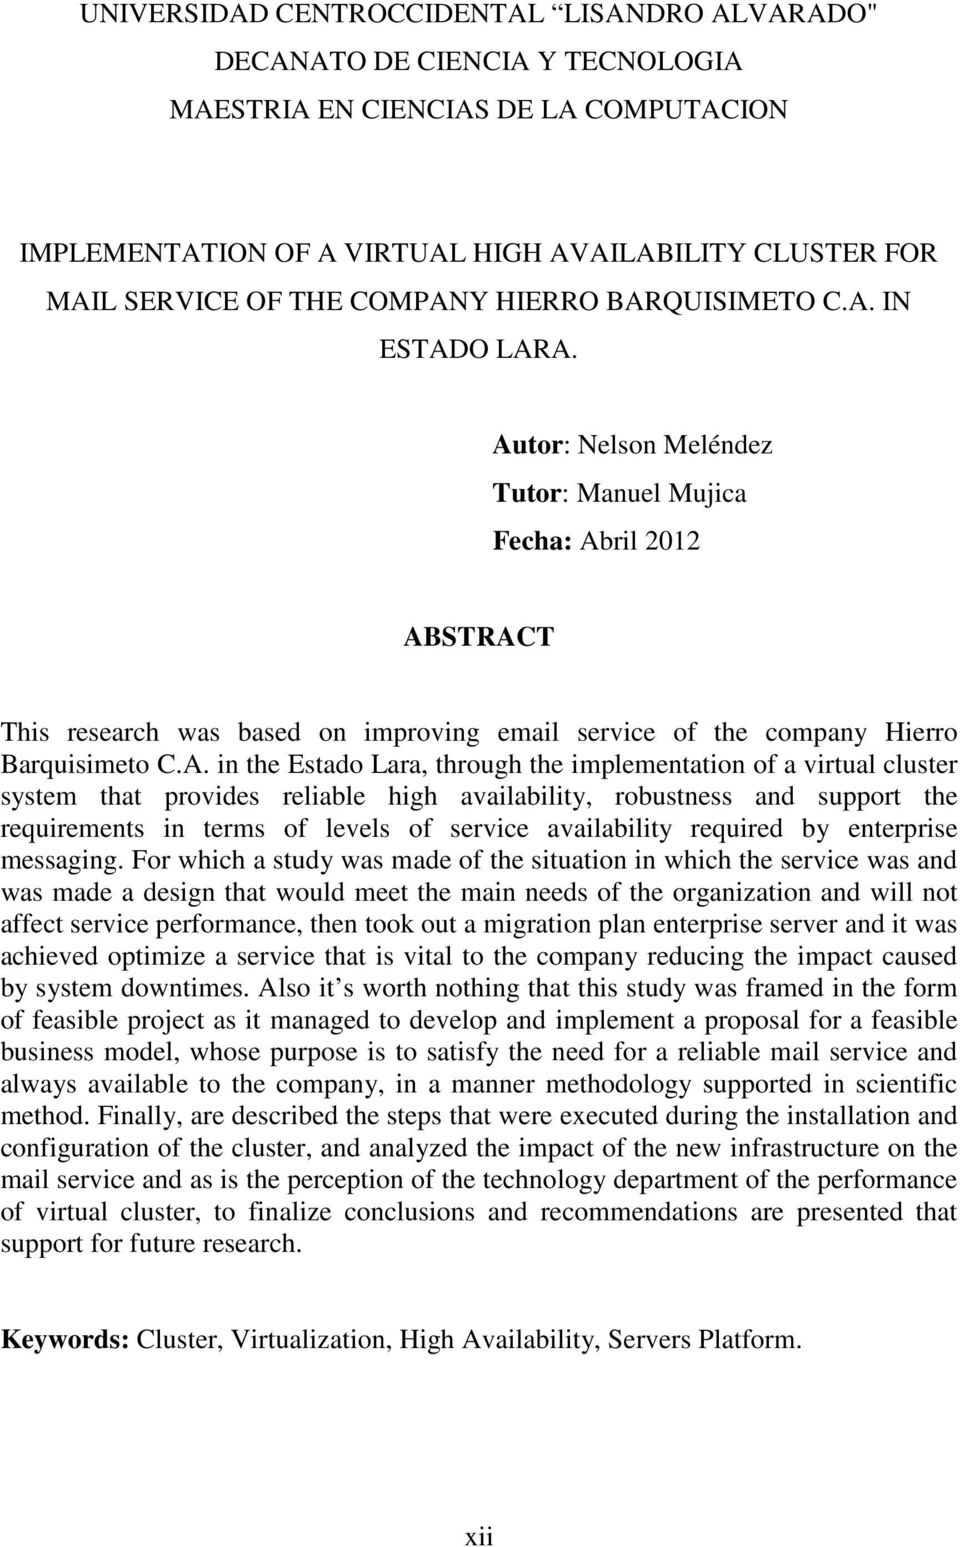 Autor: Nelson Meléndez Tutor: Manuel Mujica Fecha: Abril 2012 ABSTRACT This research was based on improving email service of the company Hierro Barquisimeto C.A. in the Estado Lara, through the